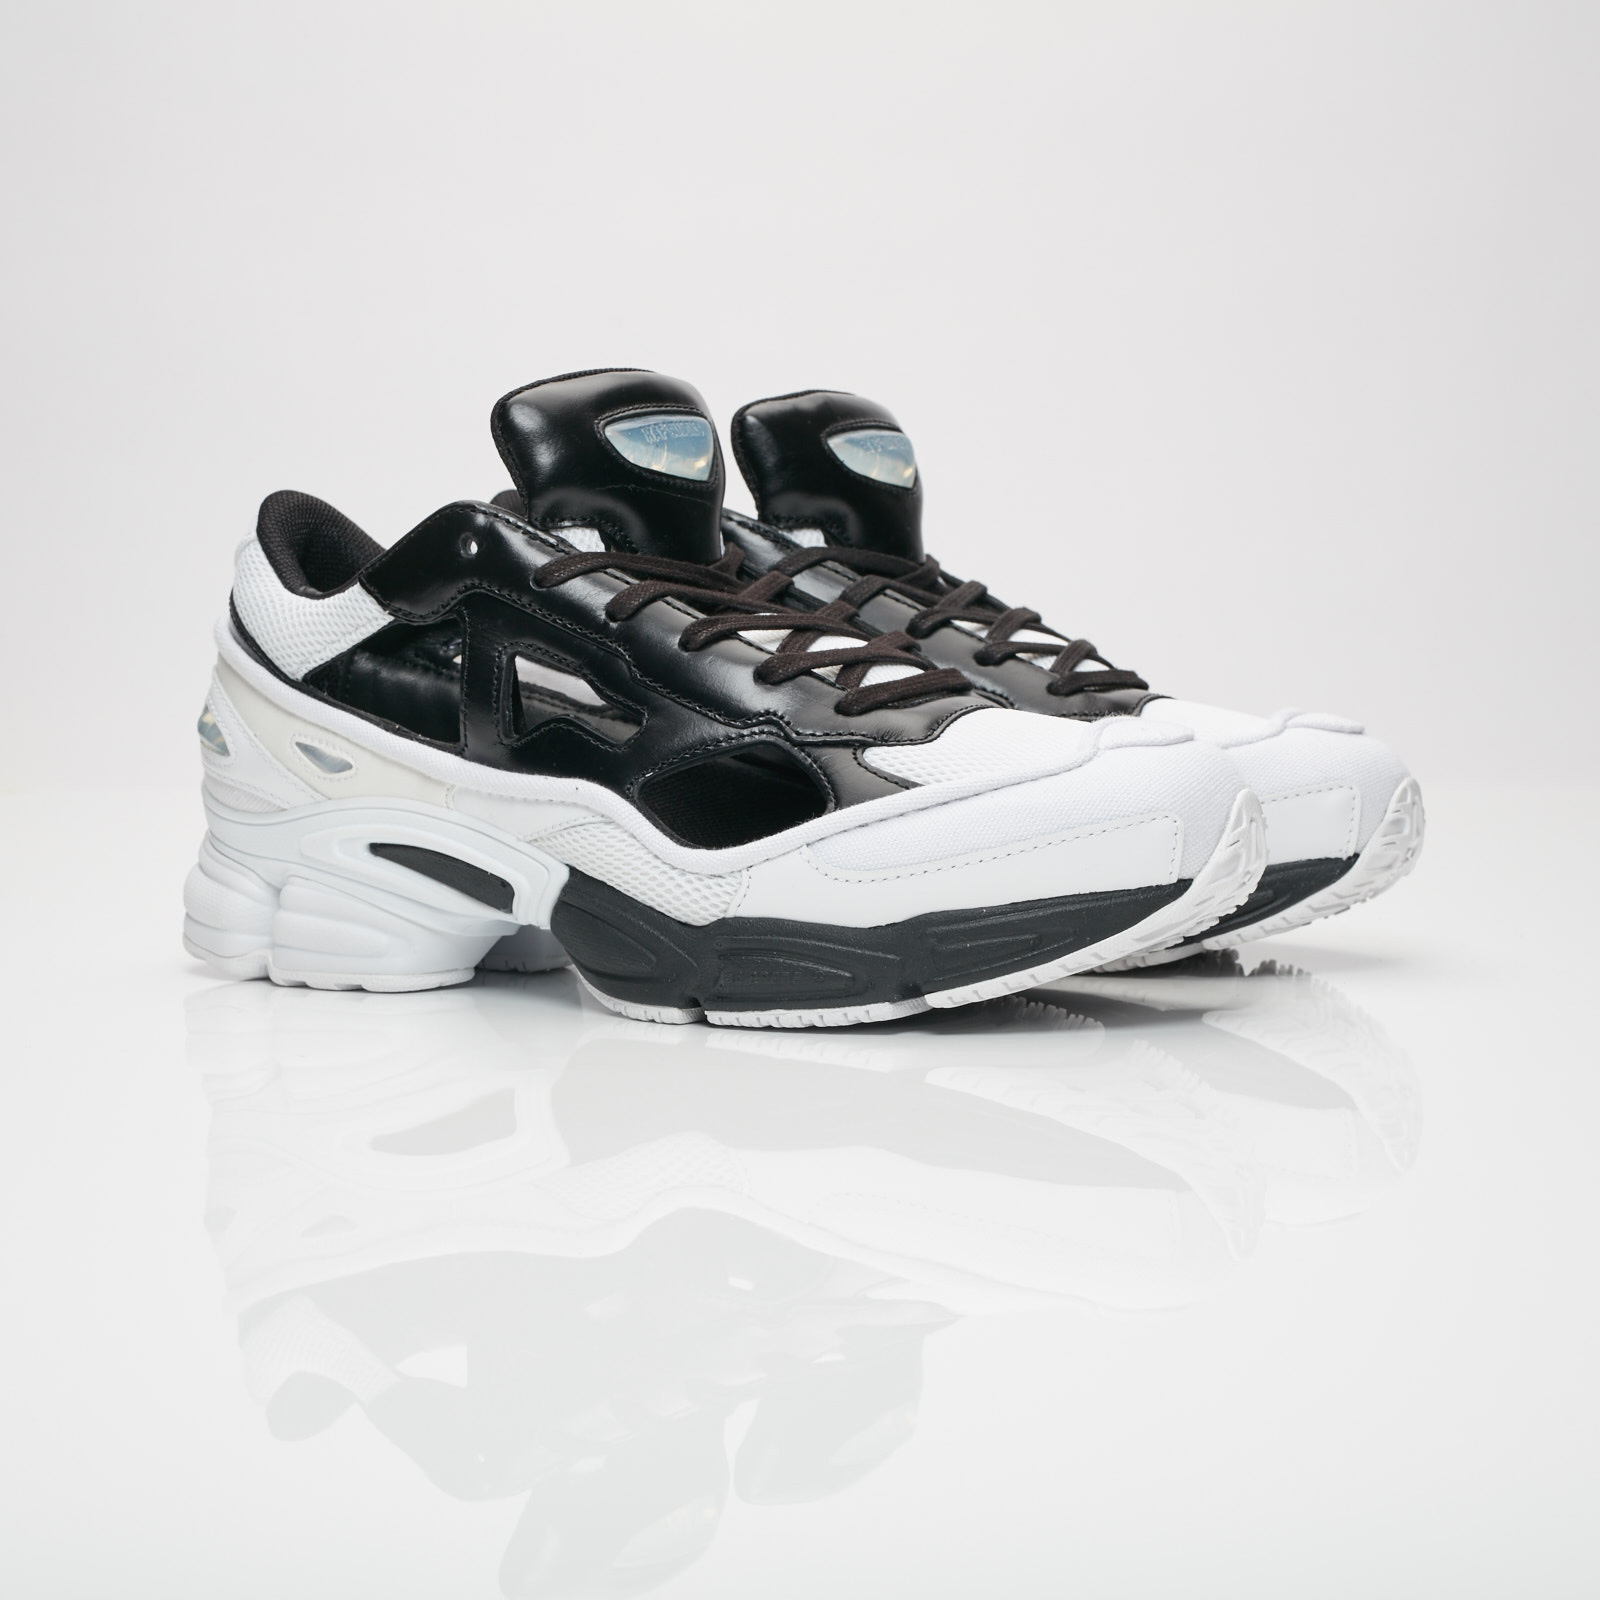 Replicant Ozweego Sneakers adidas by Raf Simons YirGheuoXh